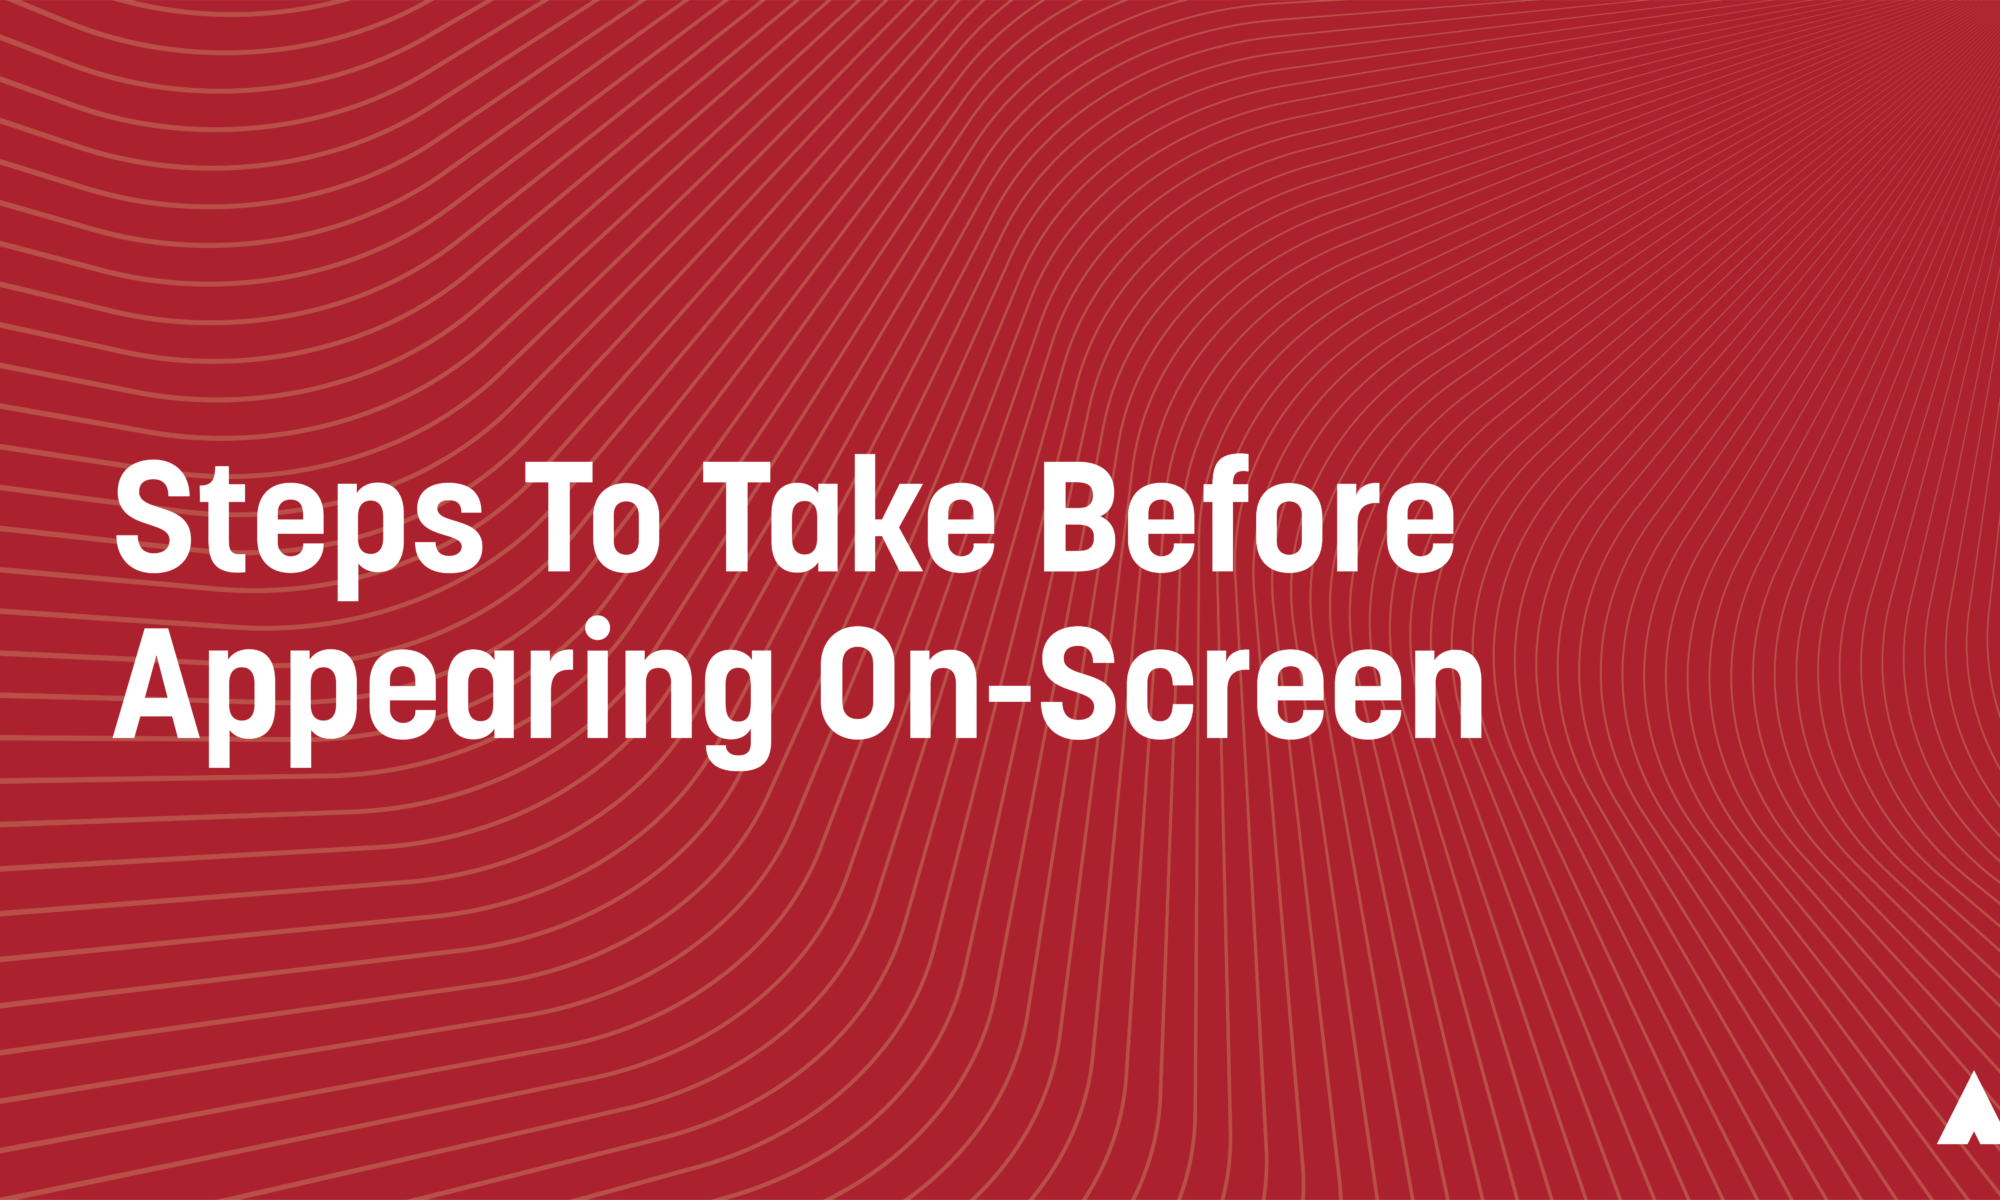 Steps To Take Before Appearing On-Screen